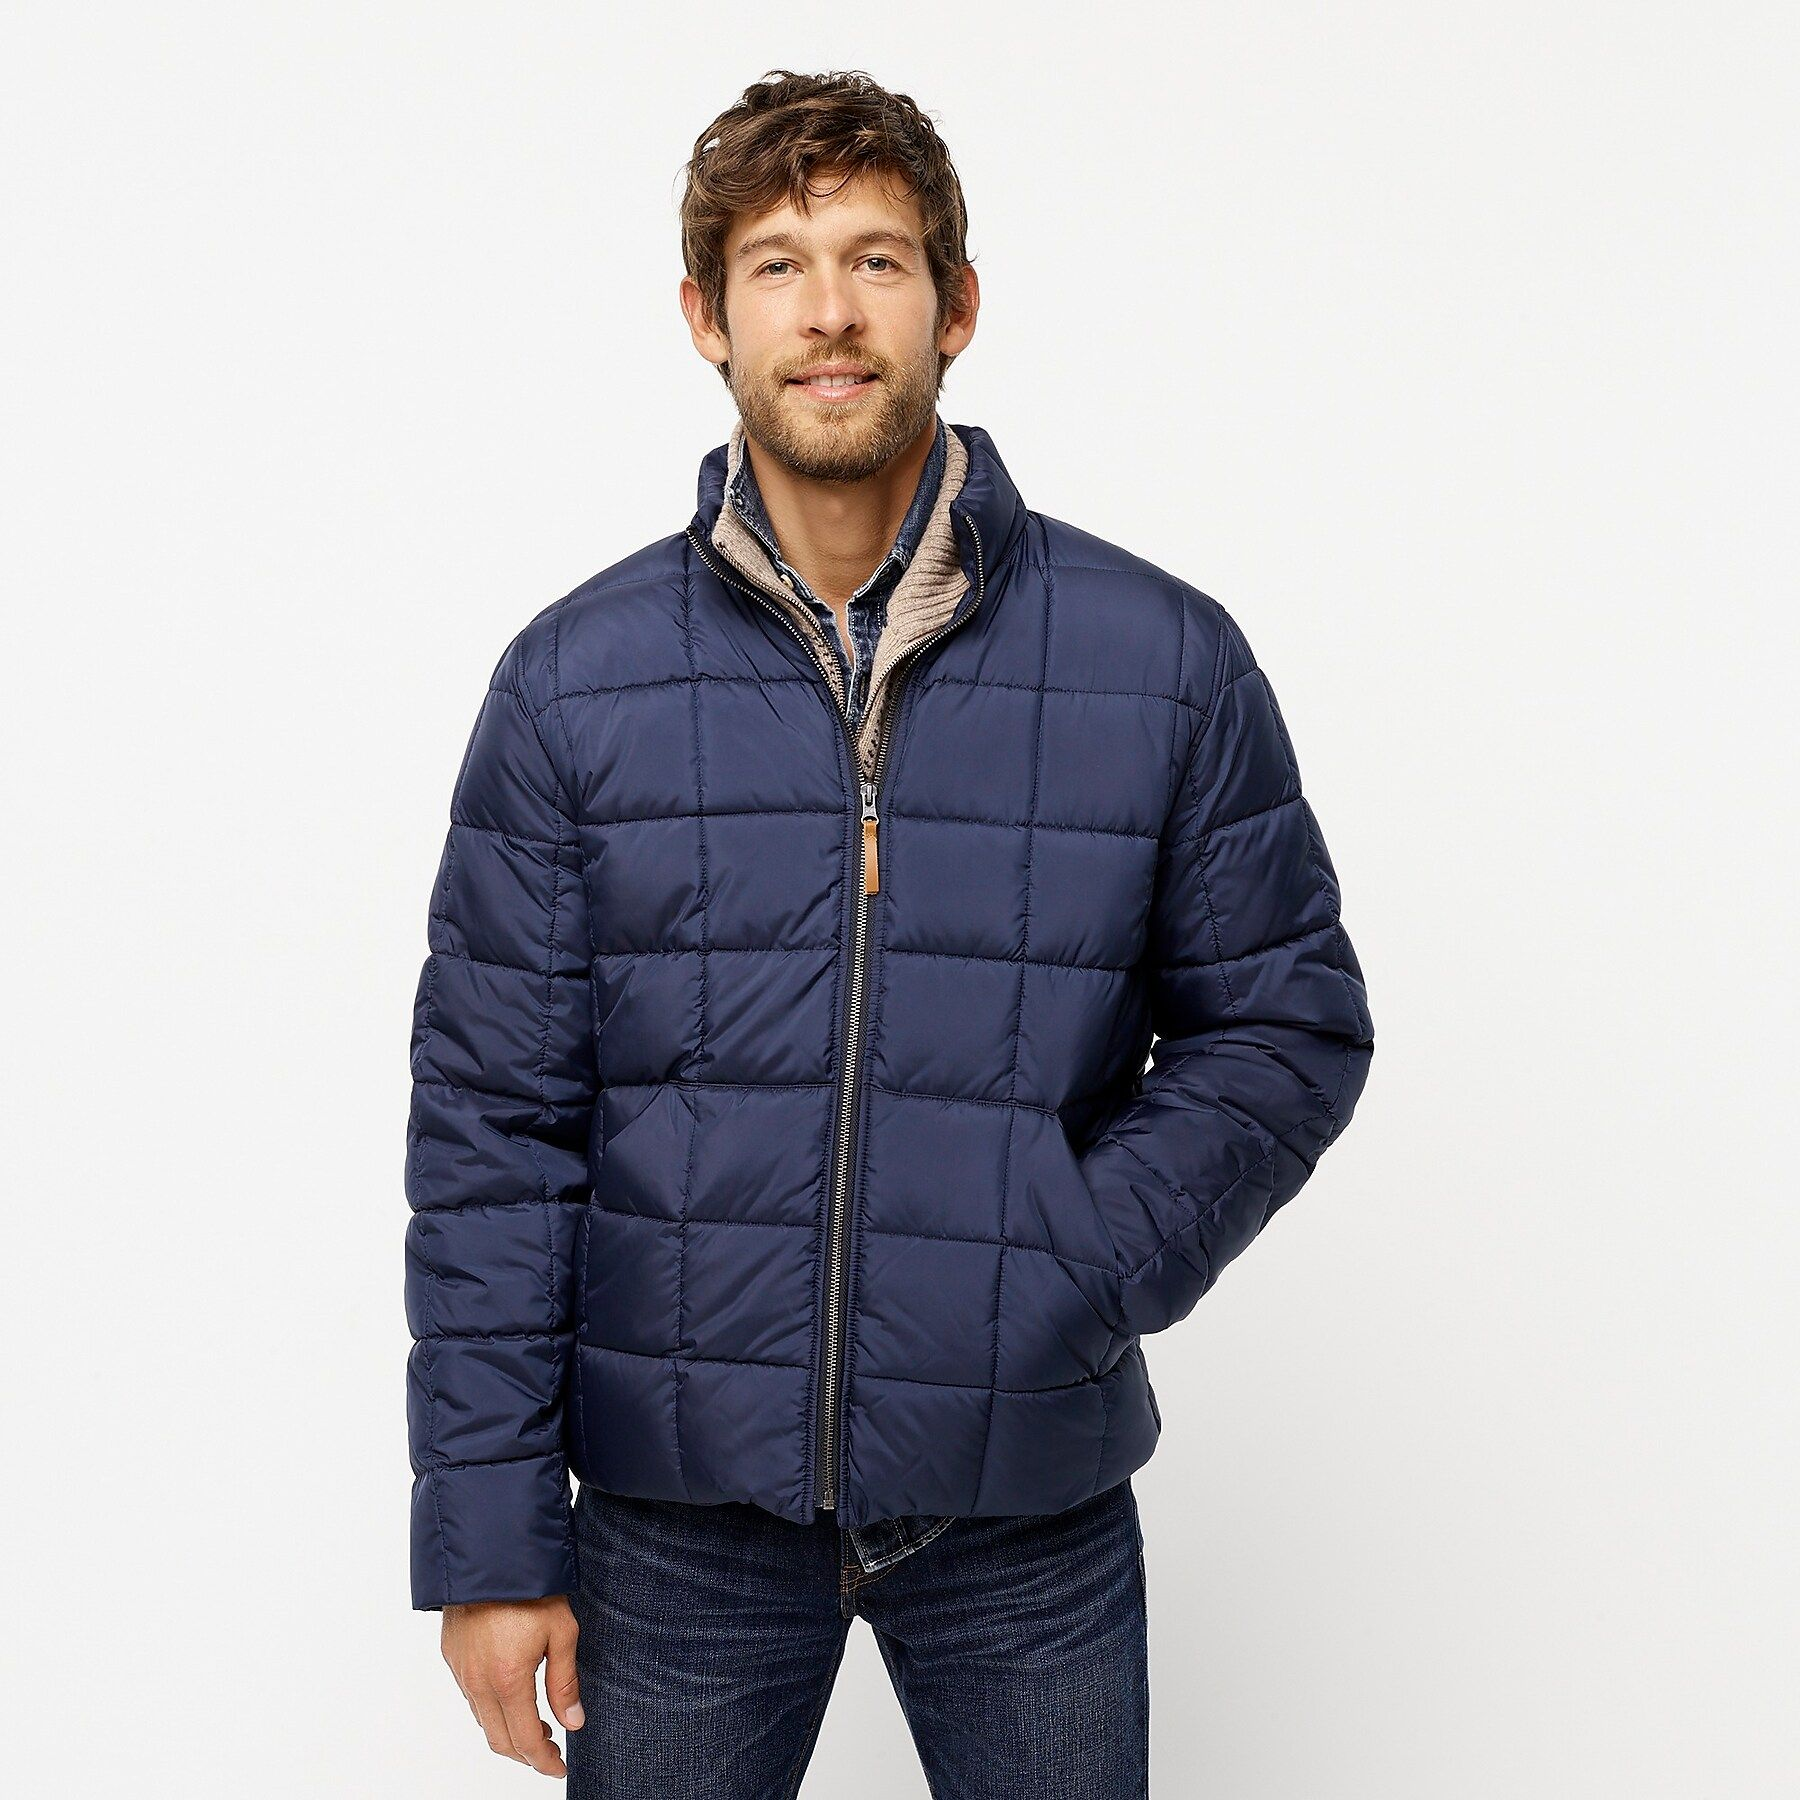 J Crew Box Quilted Jacket With Eco Friendly Primaloft Quilted Jacket Jackets Crew Clothing [ 1800 x 1800 Pixel ]